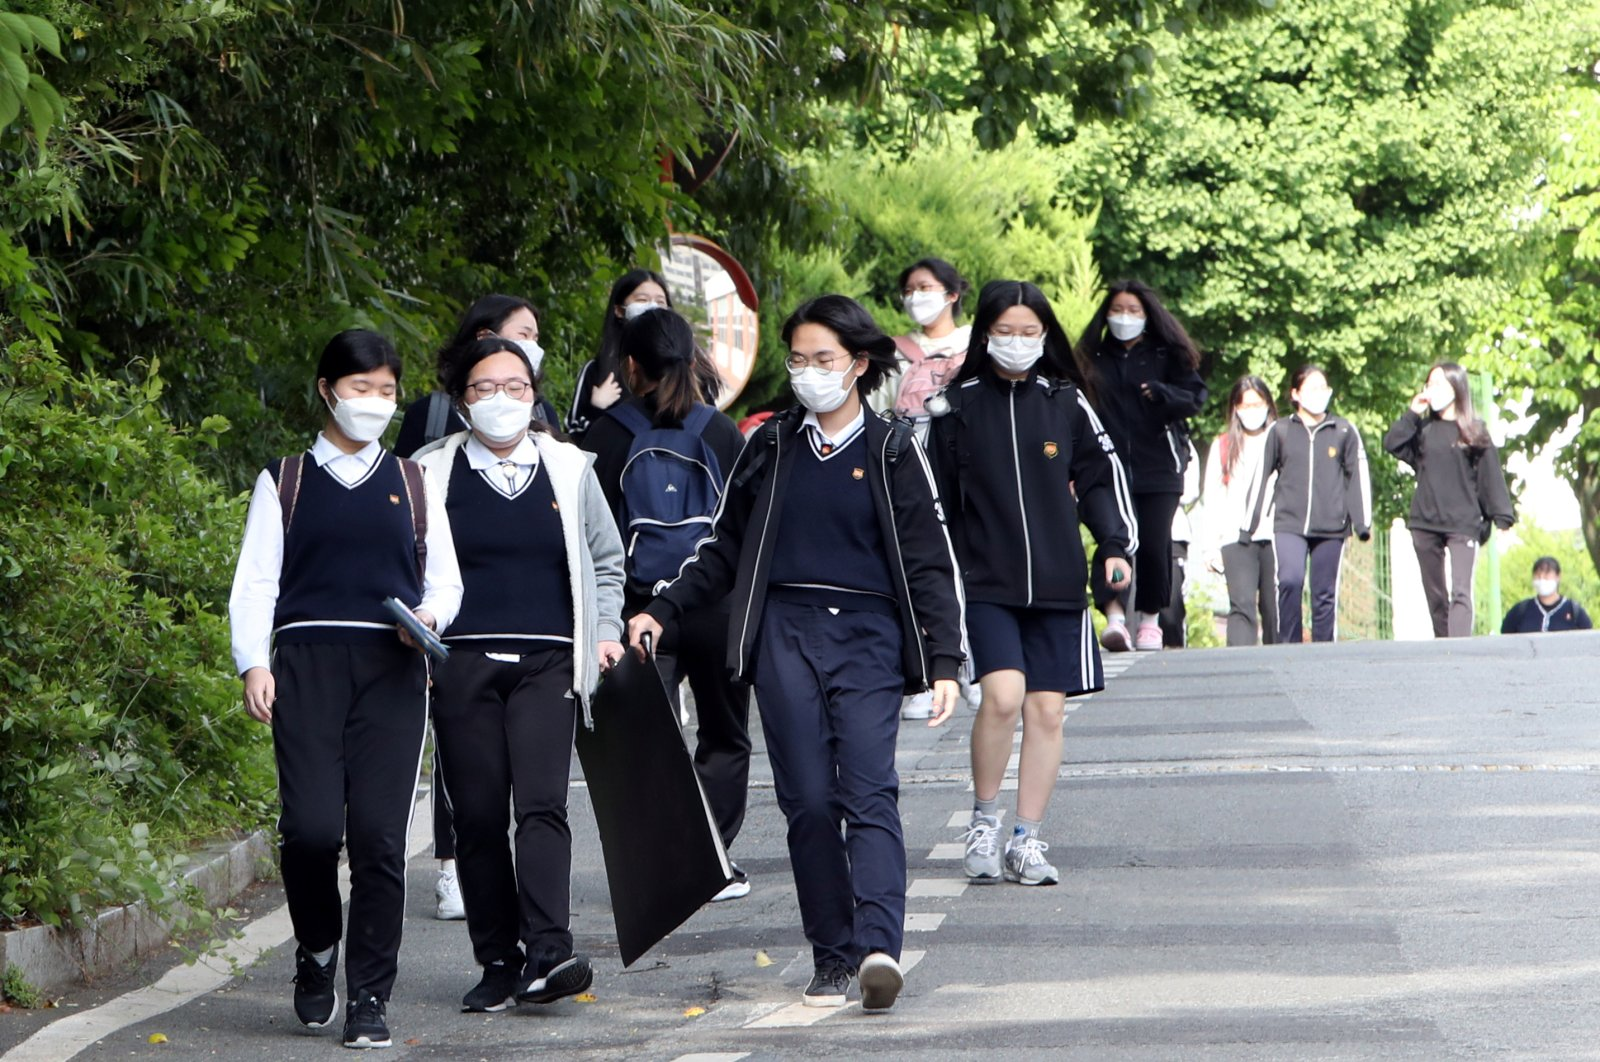 High school students wearing protective masks walk after finishing their classes, as schools reopen following the global outbreak of COVID-19, Gwangju, South Korea, May 20, 2020. (Yonhap via Reuters Photo)